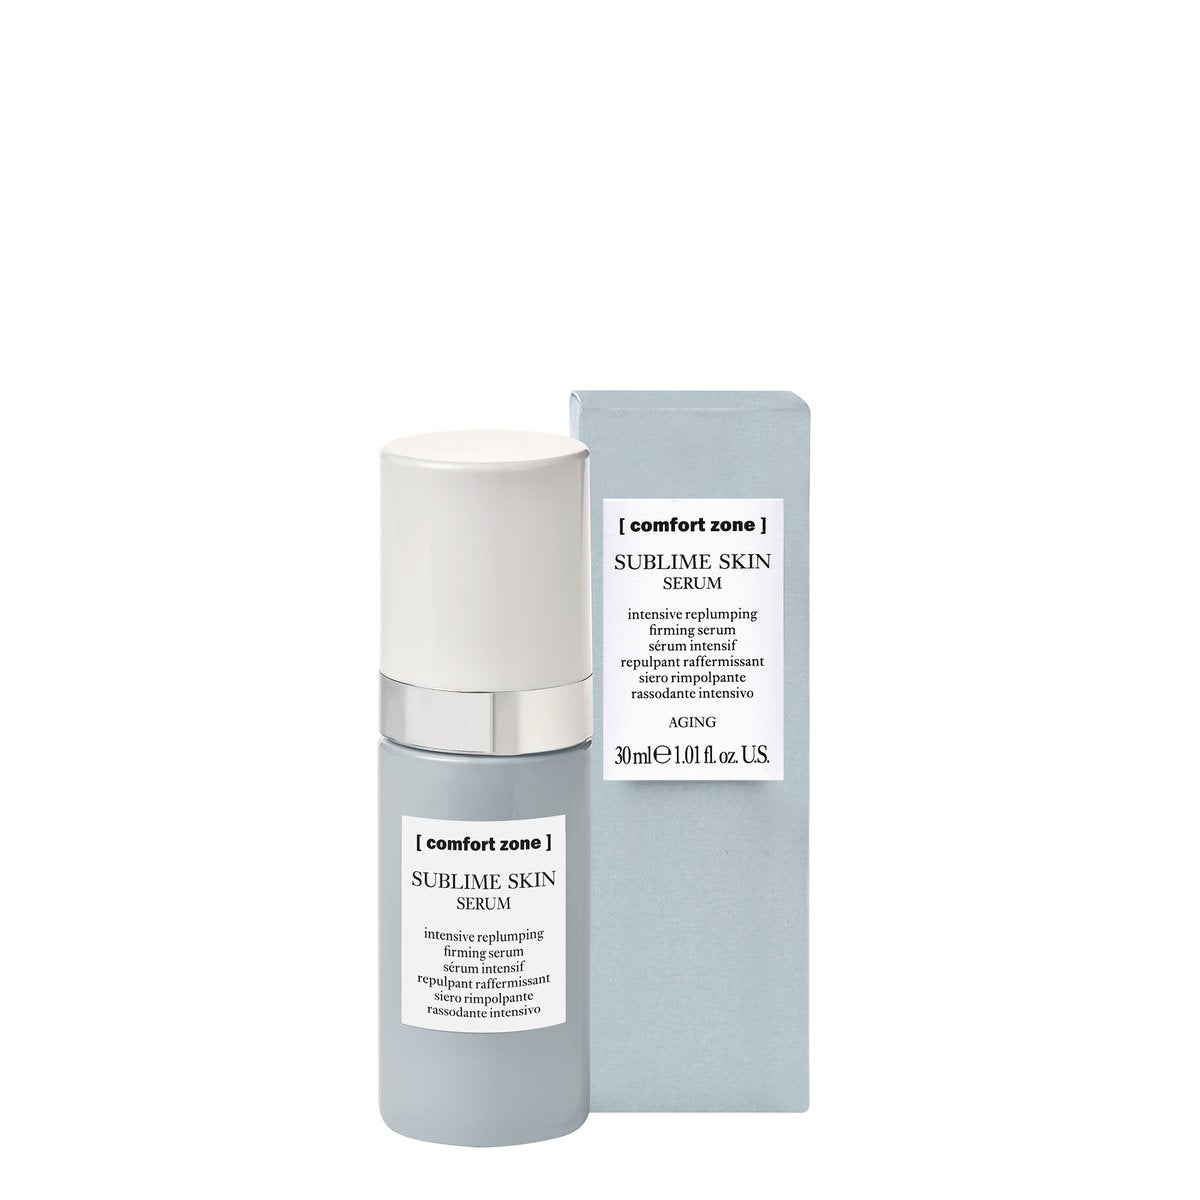 Sublime Skin Serum